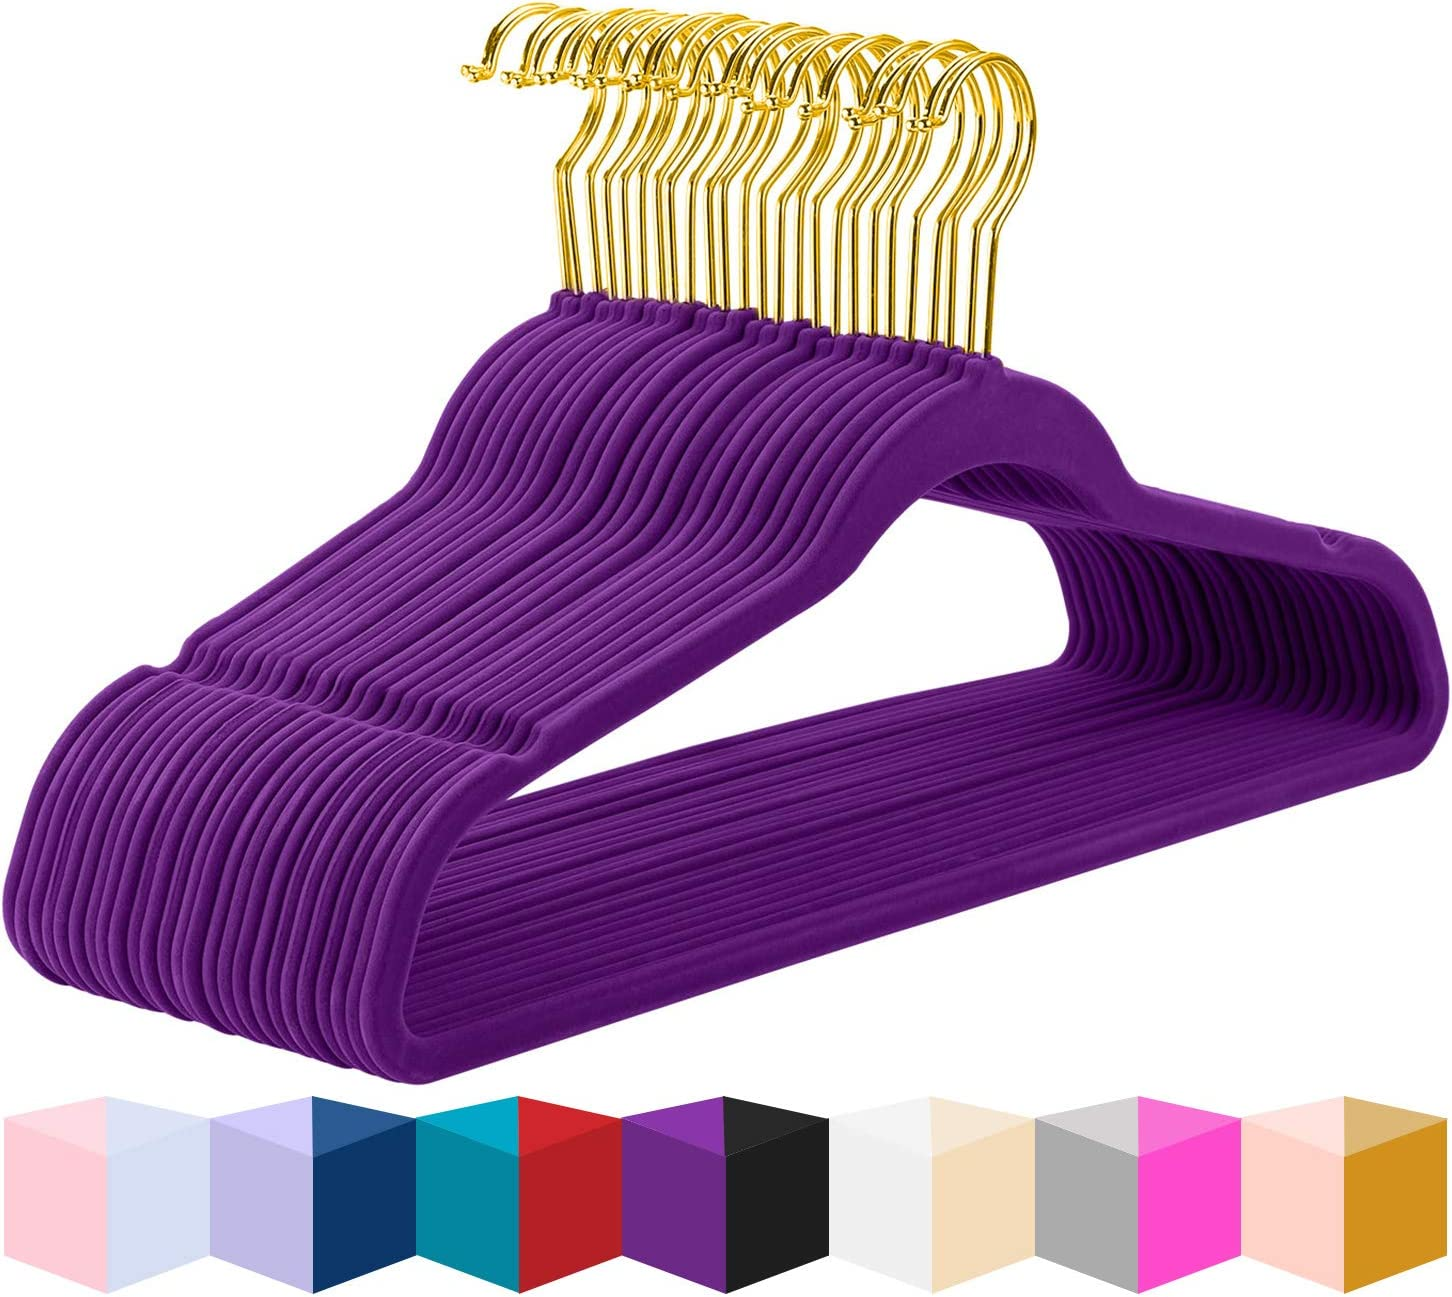 MIZGI Premium Velvet Hangers Pack 50 Pcs Heavyduty - Non Slip Slimline - Velvet Suit Hangers Dark Purple - Gold Hooks,Space Saving Clothes Hanger(Dark Purple) …